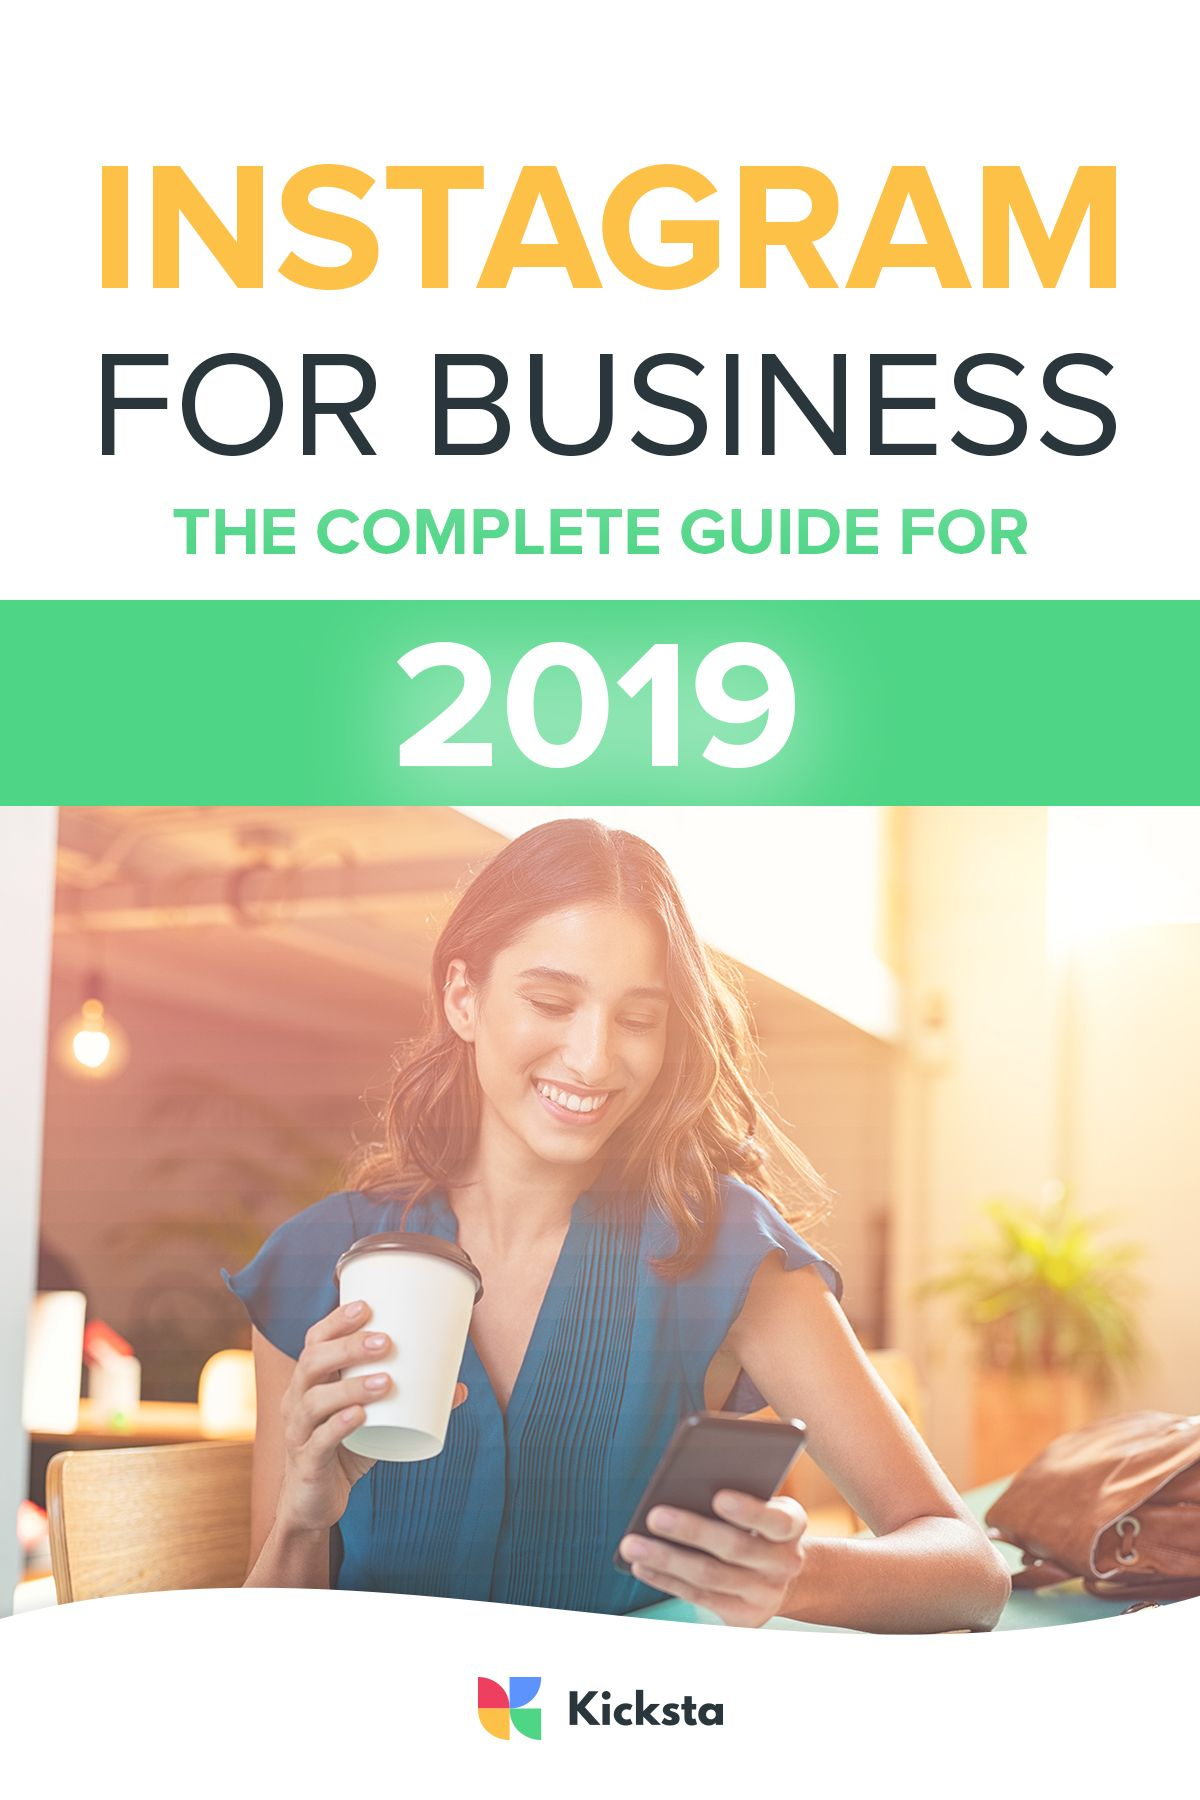 Instagram For Business The Complete Guide for 2019